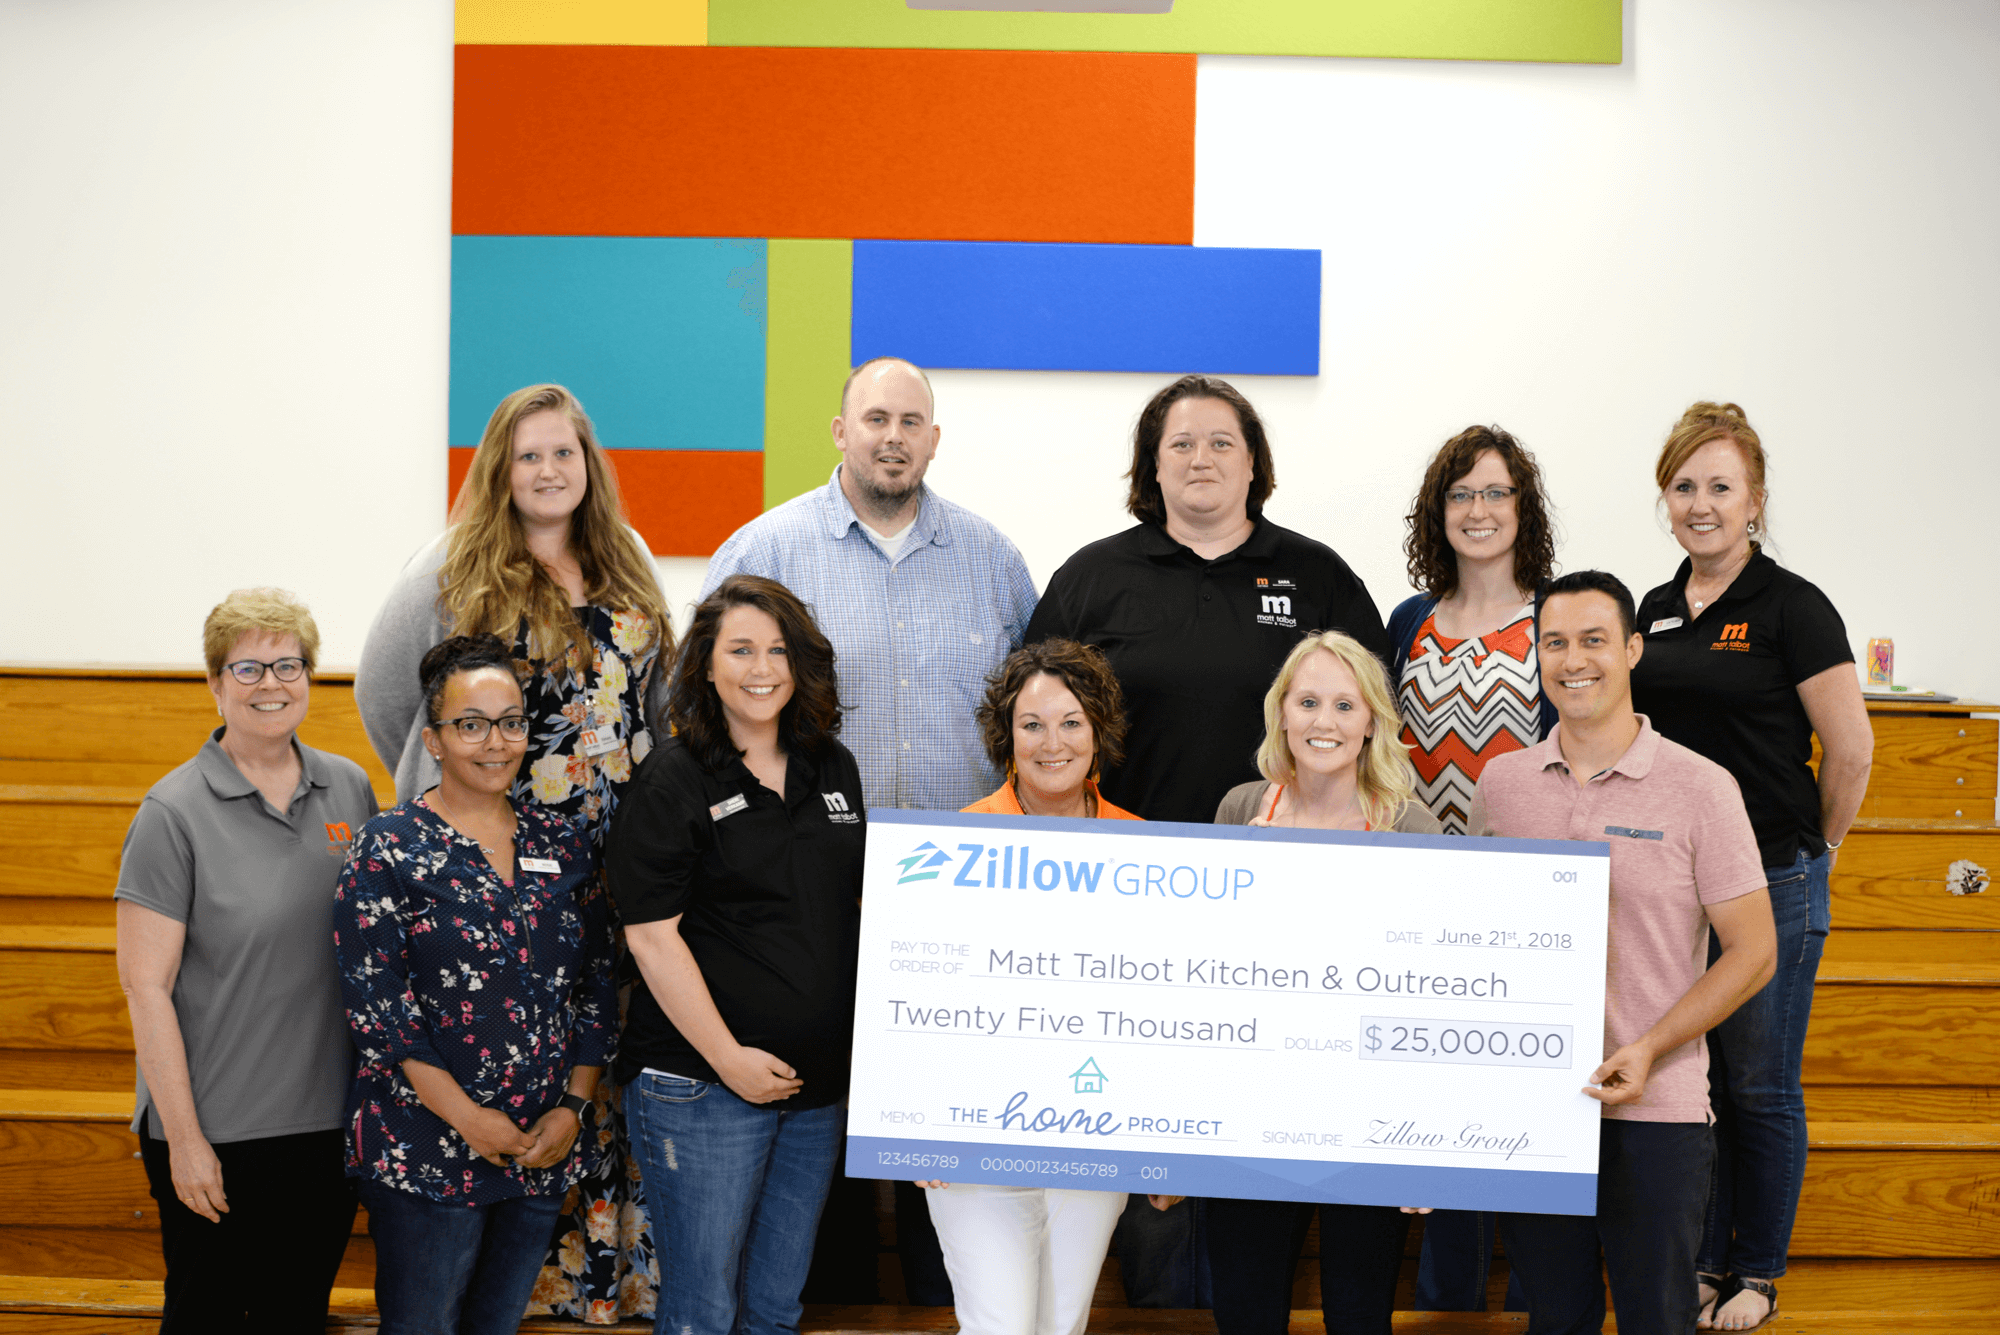 Matt Talbot Kitchen & Outreach Selected as Community Partner with Zillow Group